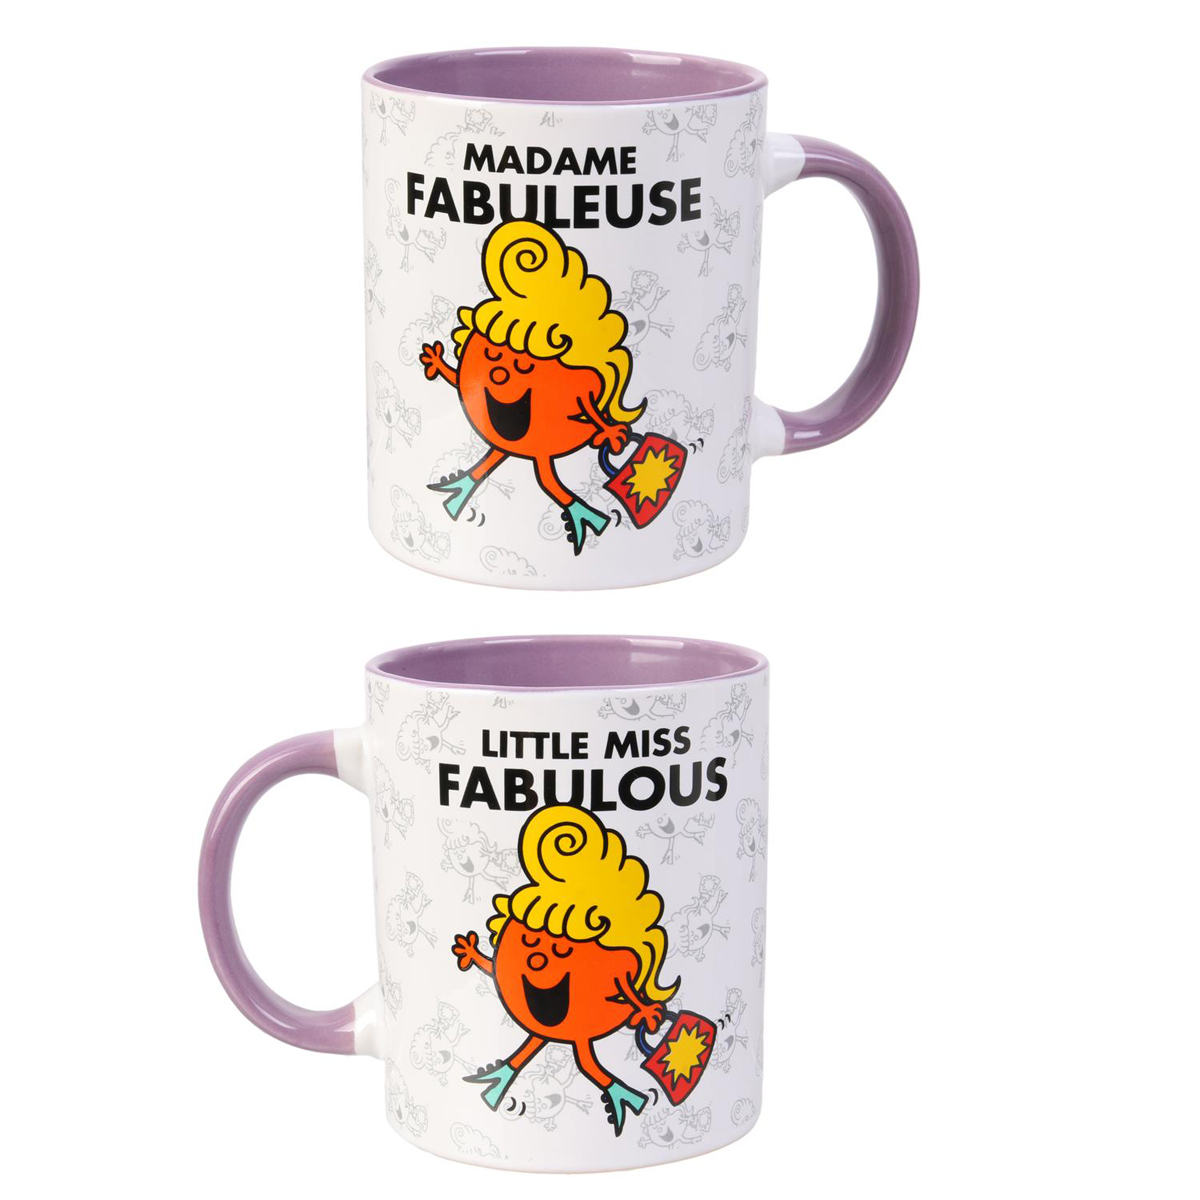 Mug céramique \'Monsieur Madame\' violet (Mme Fabuleuse - Little miss Fabulous) - 95x80 mm - [Q8995]